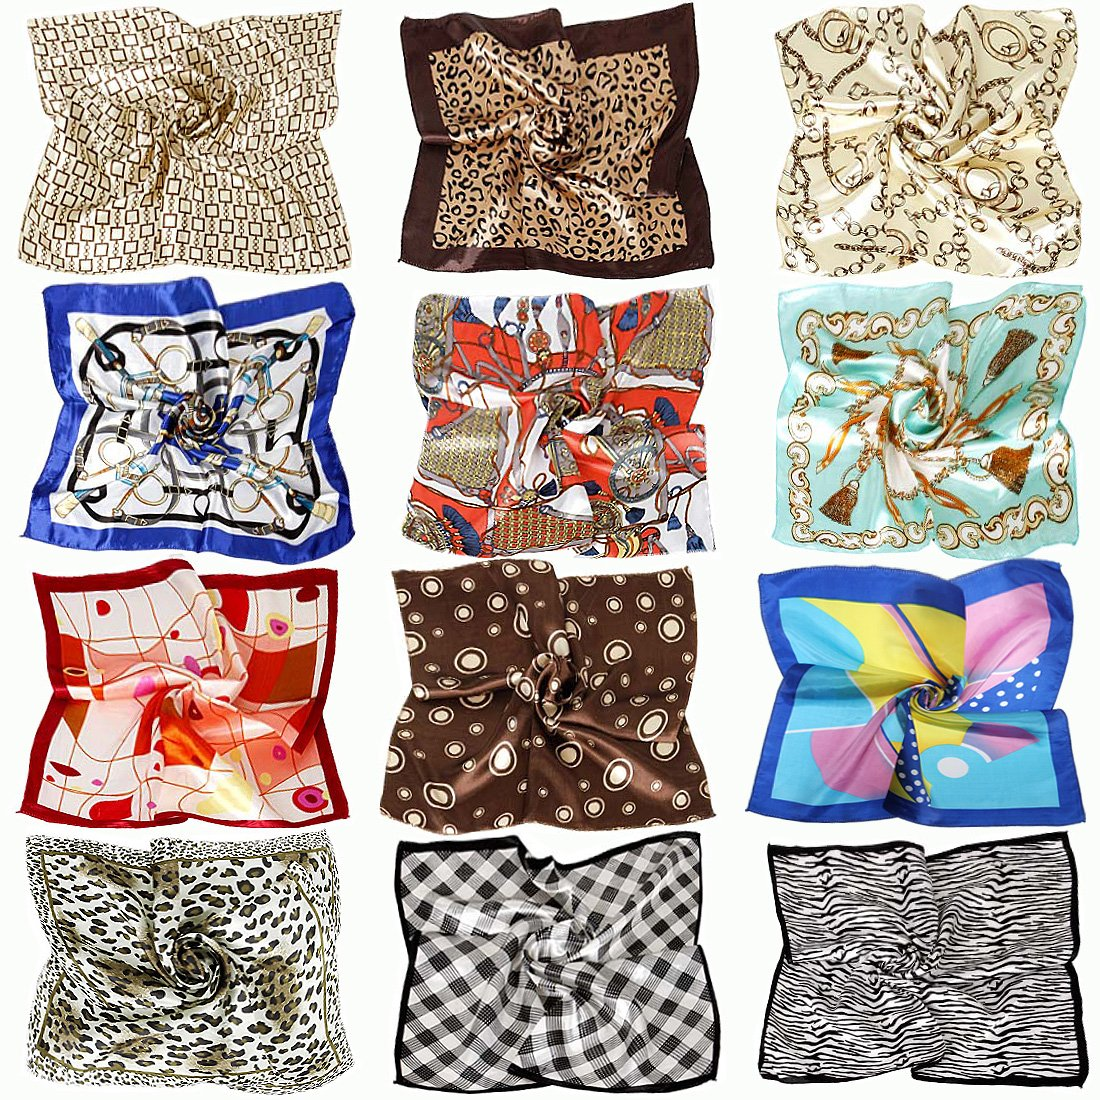 BMC 12pc Women's Silky Scarf Square Mixed Animal Patterns & Colors Fashion Accessory Set - Animal Abstract Pack